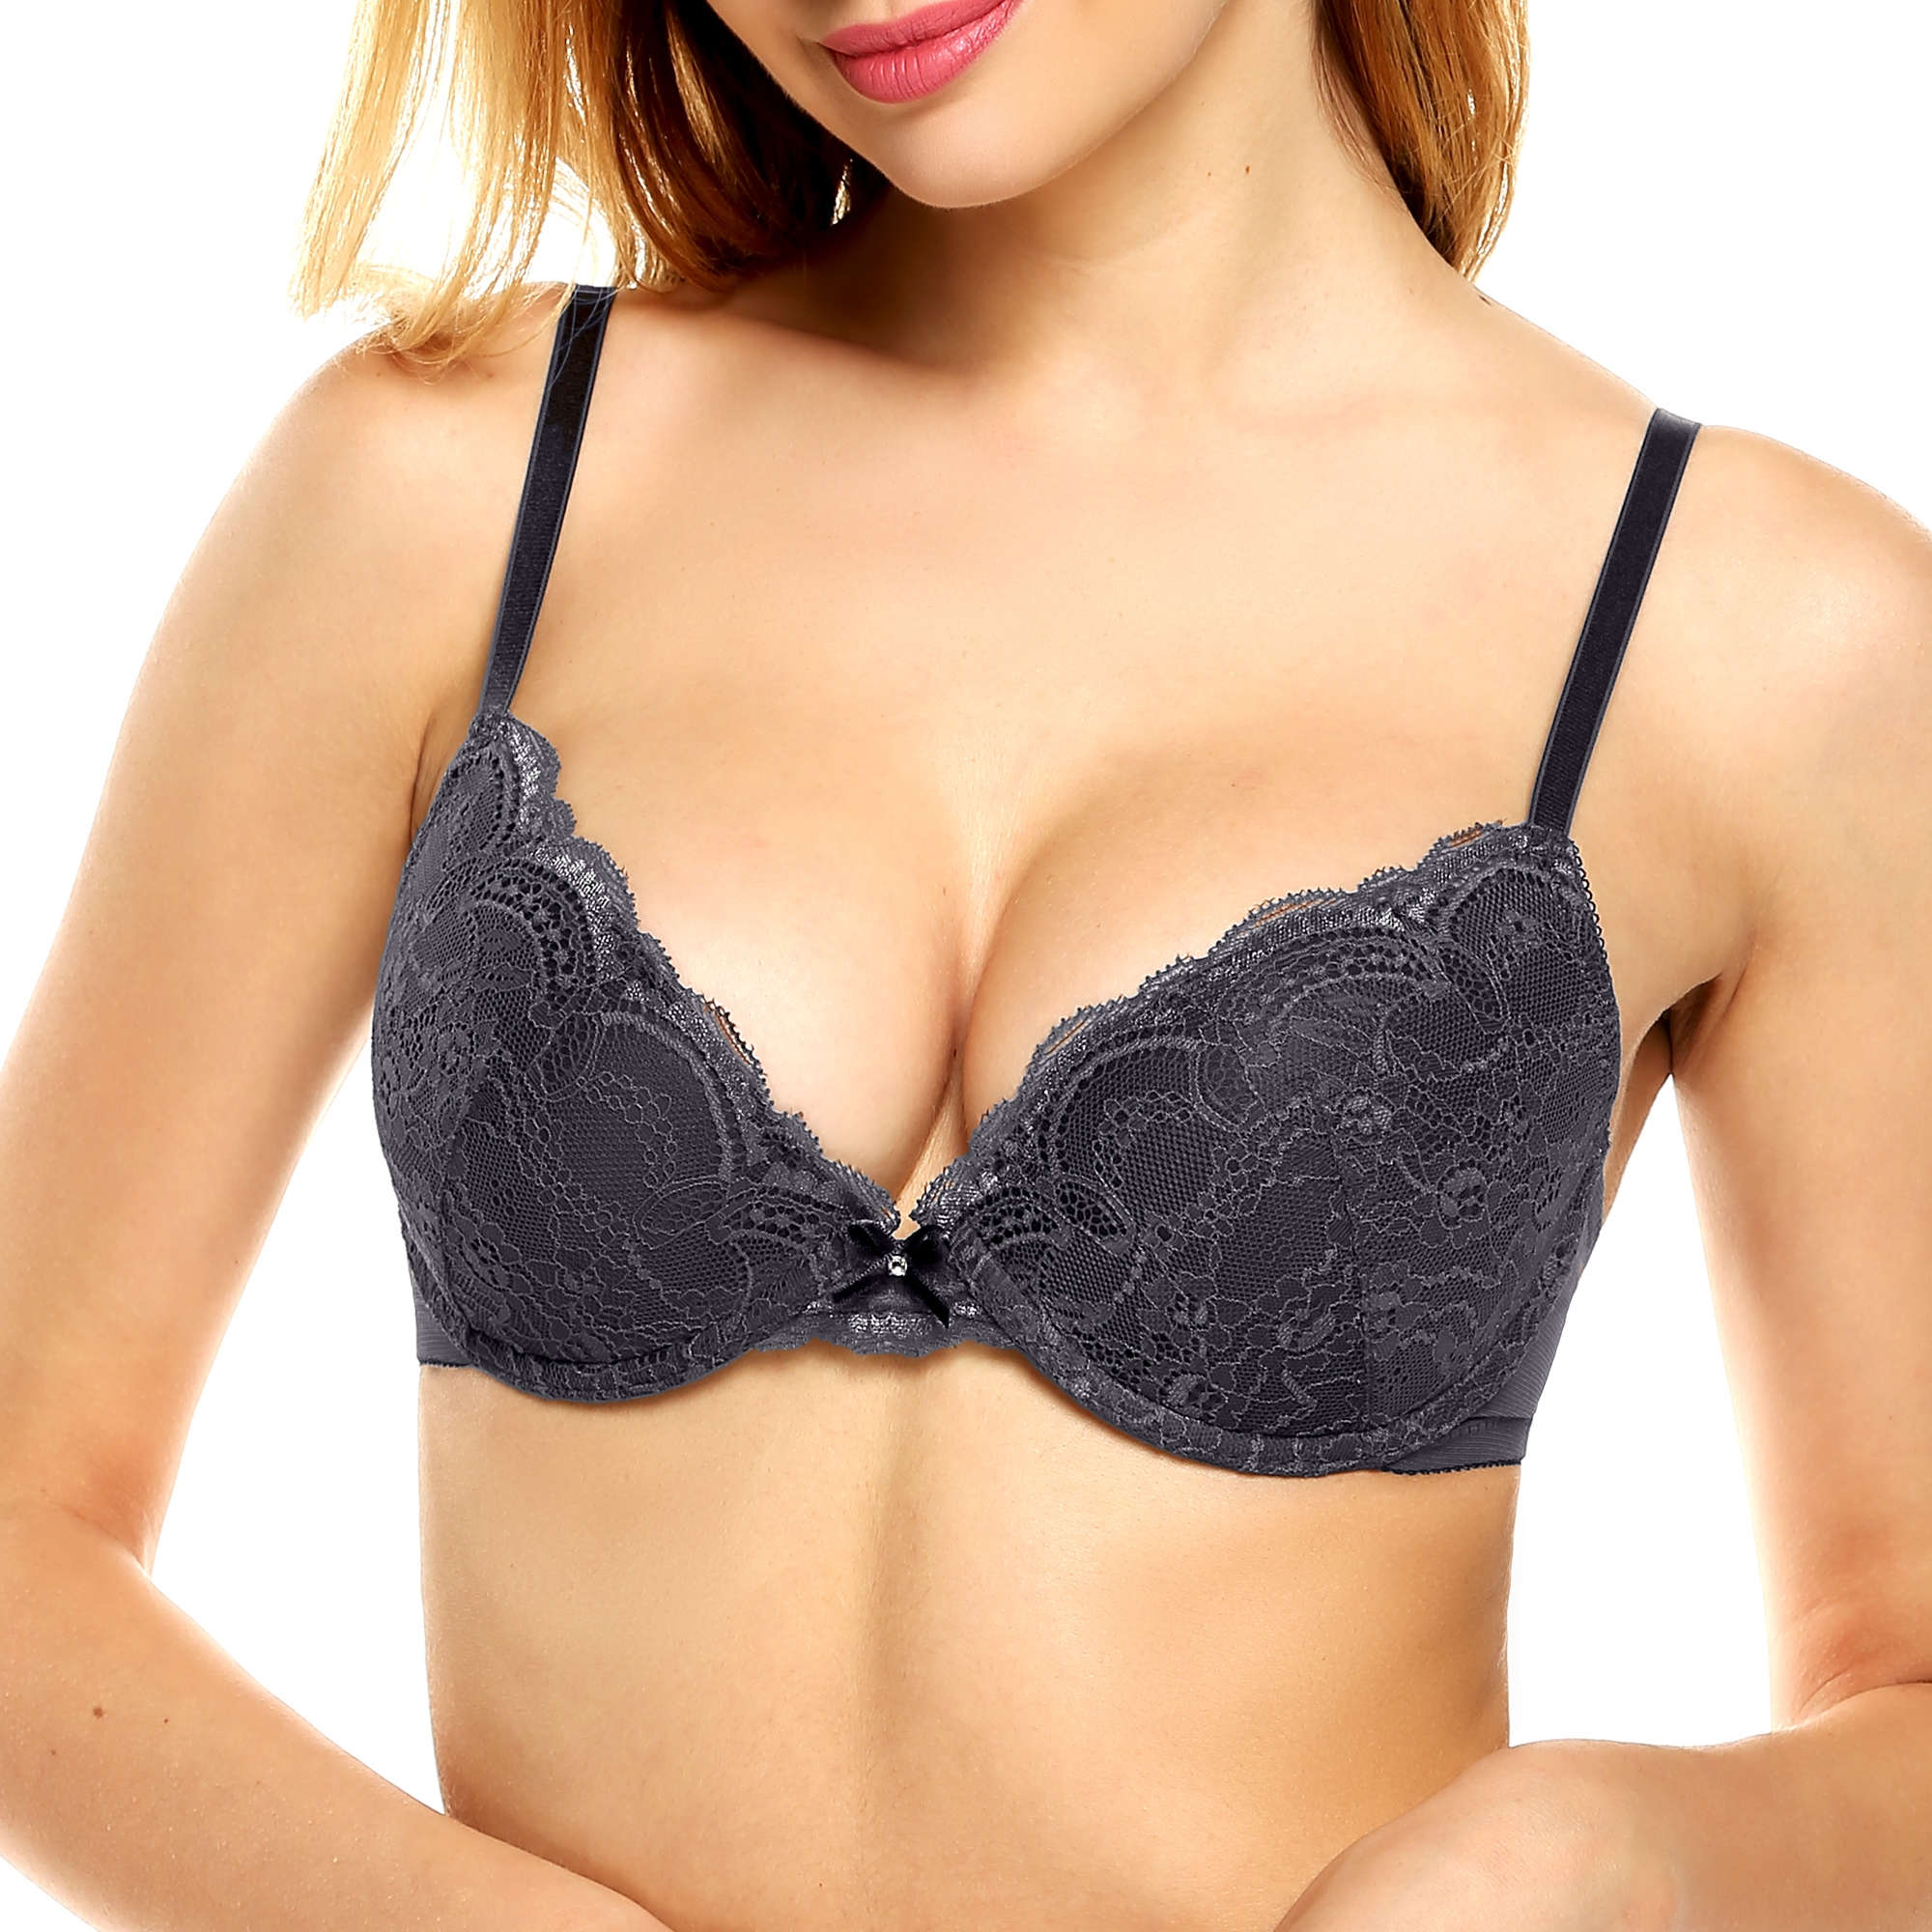 Plus Size Women's Lace Padded Underwire Demi Push Up Bra 32A-36DD